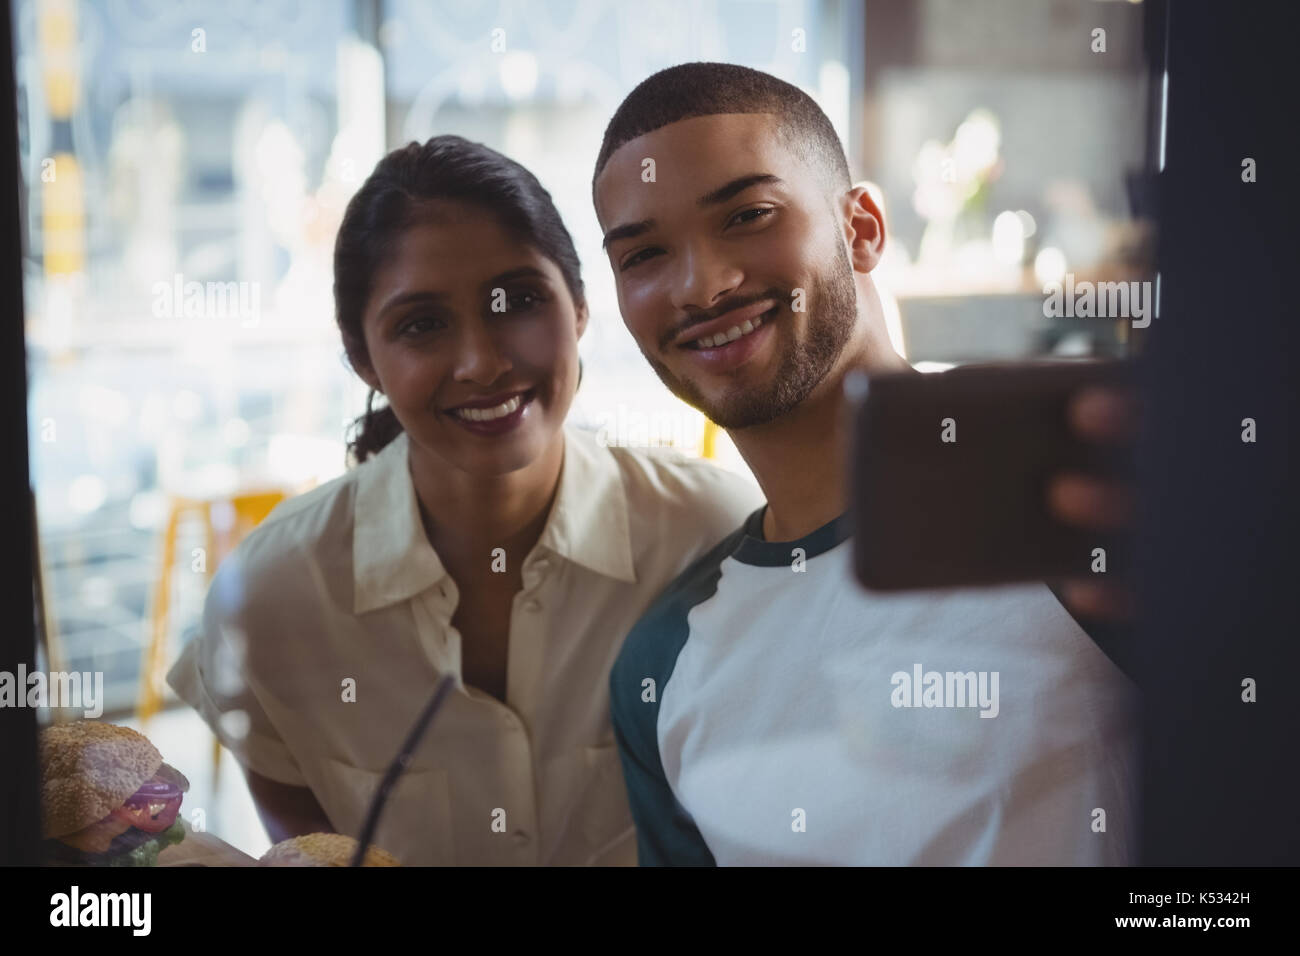 Smiling young man with woman taking selfie seen through glass in cafe - Stock Image